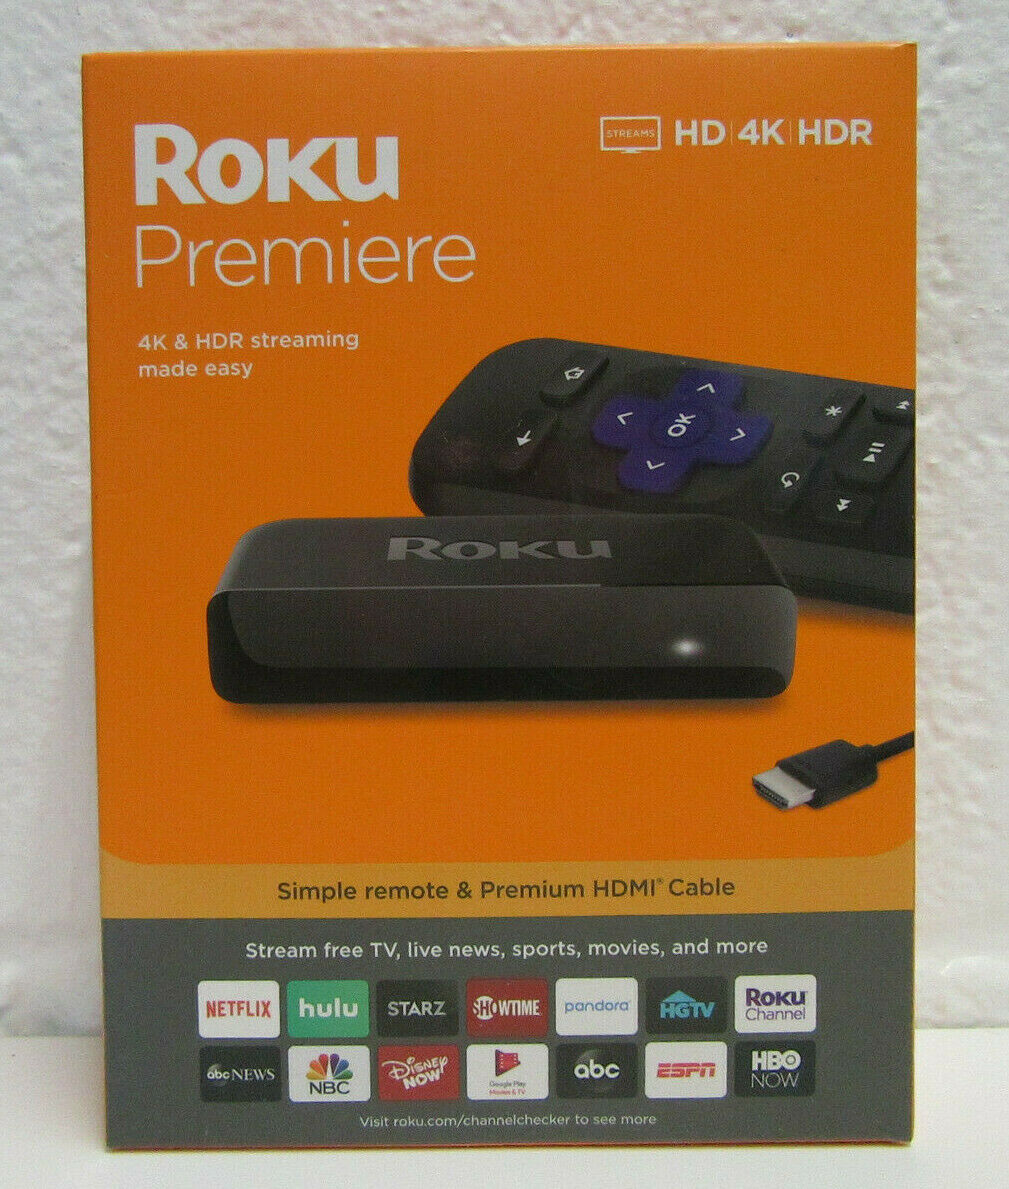 Roku Premiere 3920R HD/4K/HDR Streaming Media Player W/Remote, HDMI Cable SEALED 3920r cable hdmi media player premiere roku sealed streaming